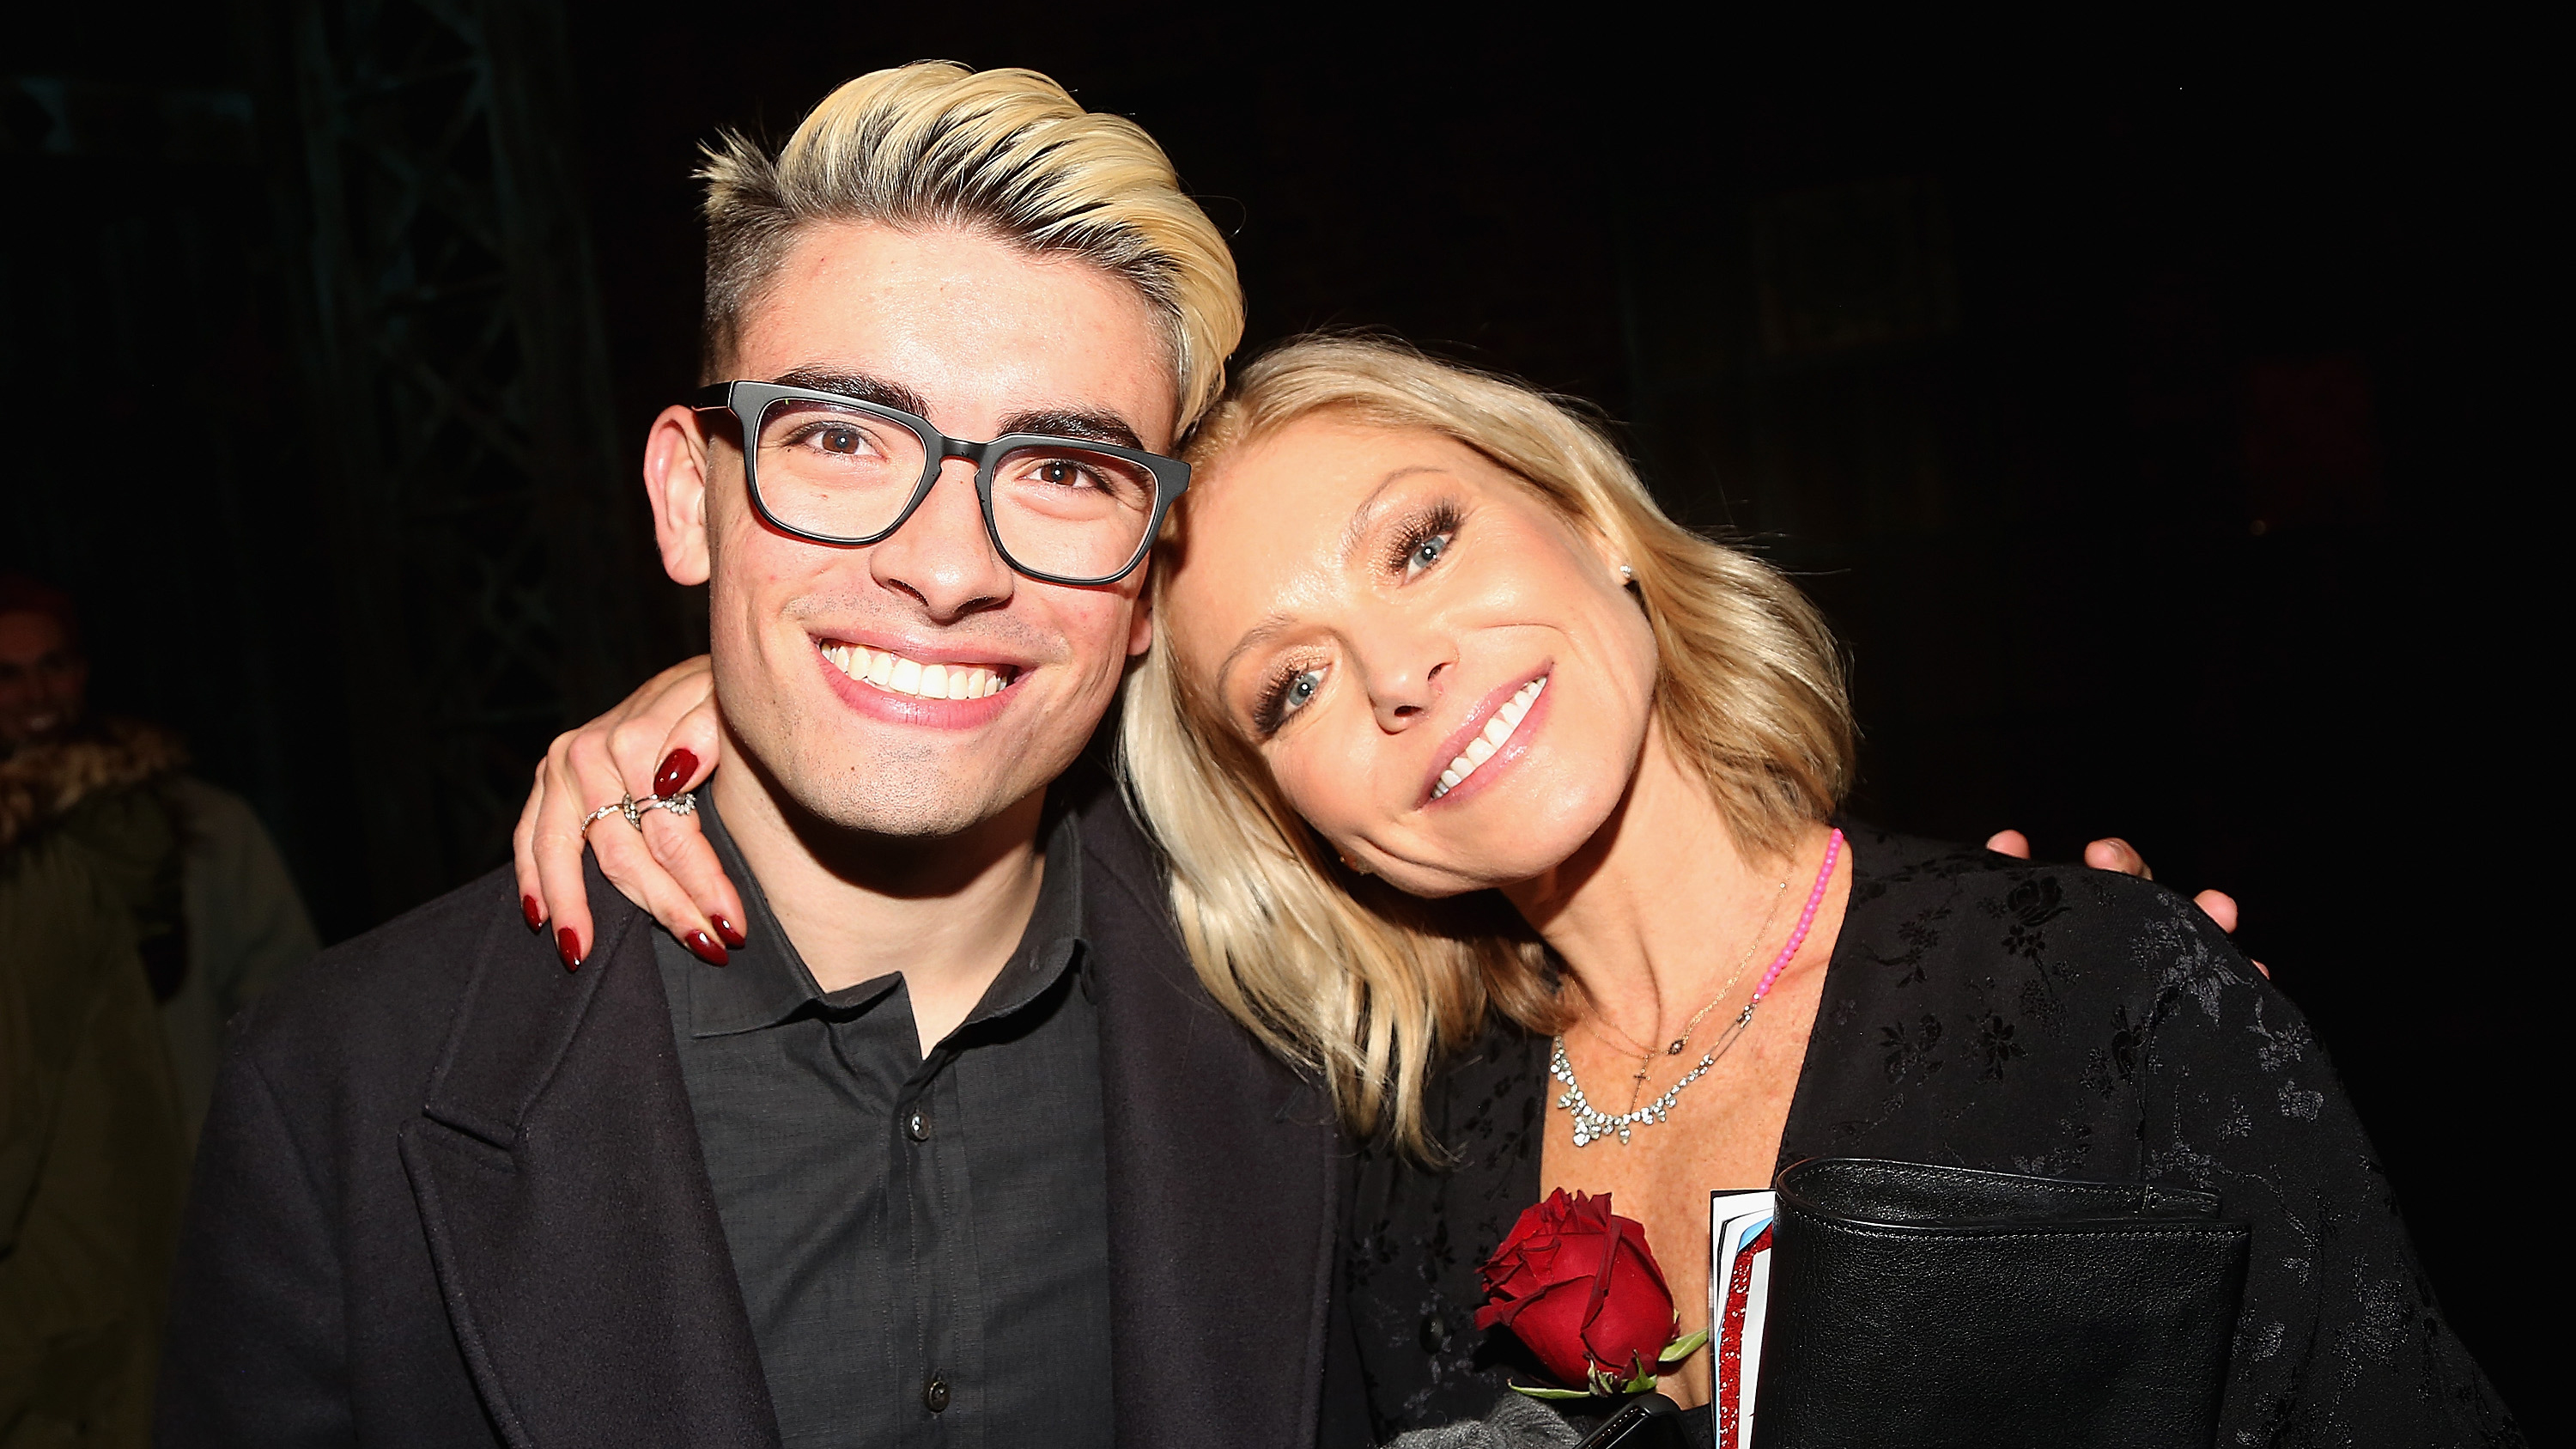 Kelly Ripa faces backlash for saying son lives in 'extreme poverty' after moving out